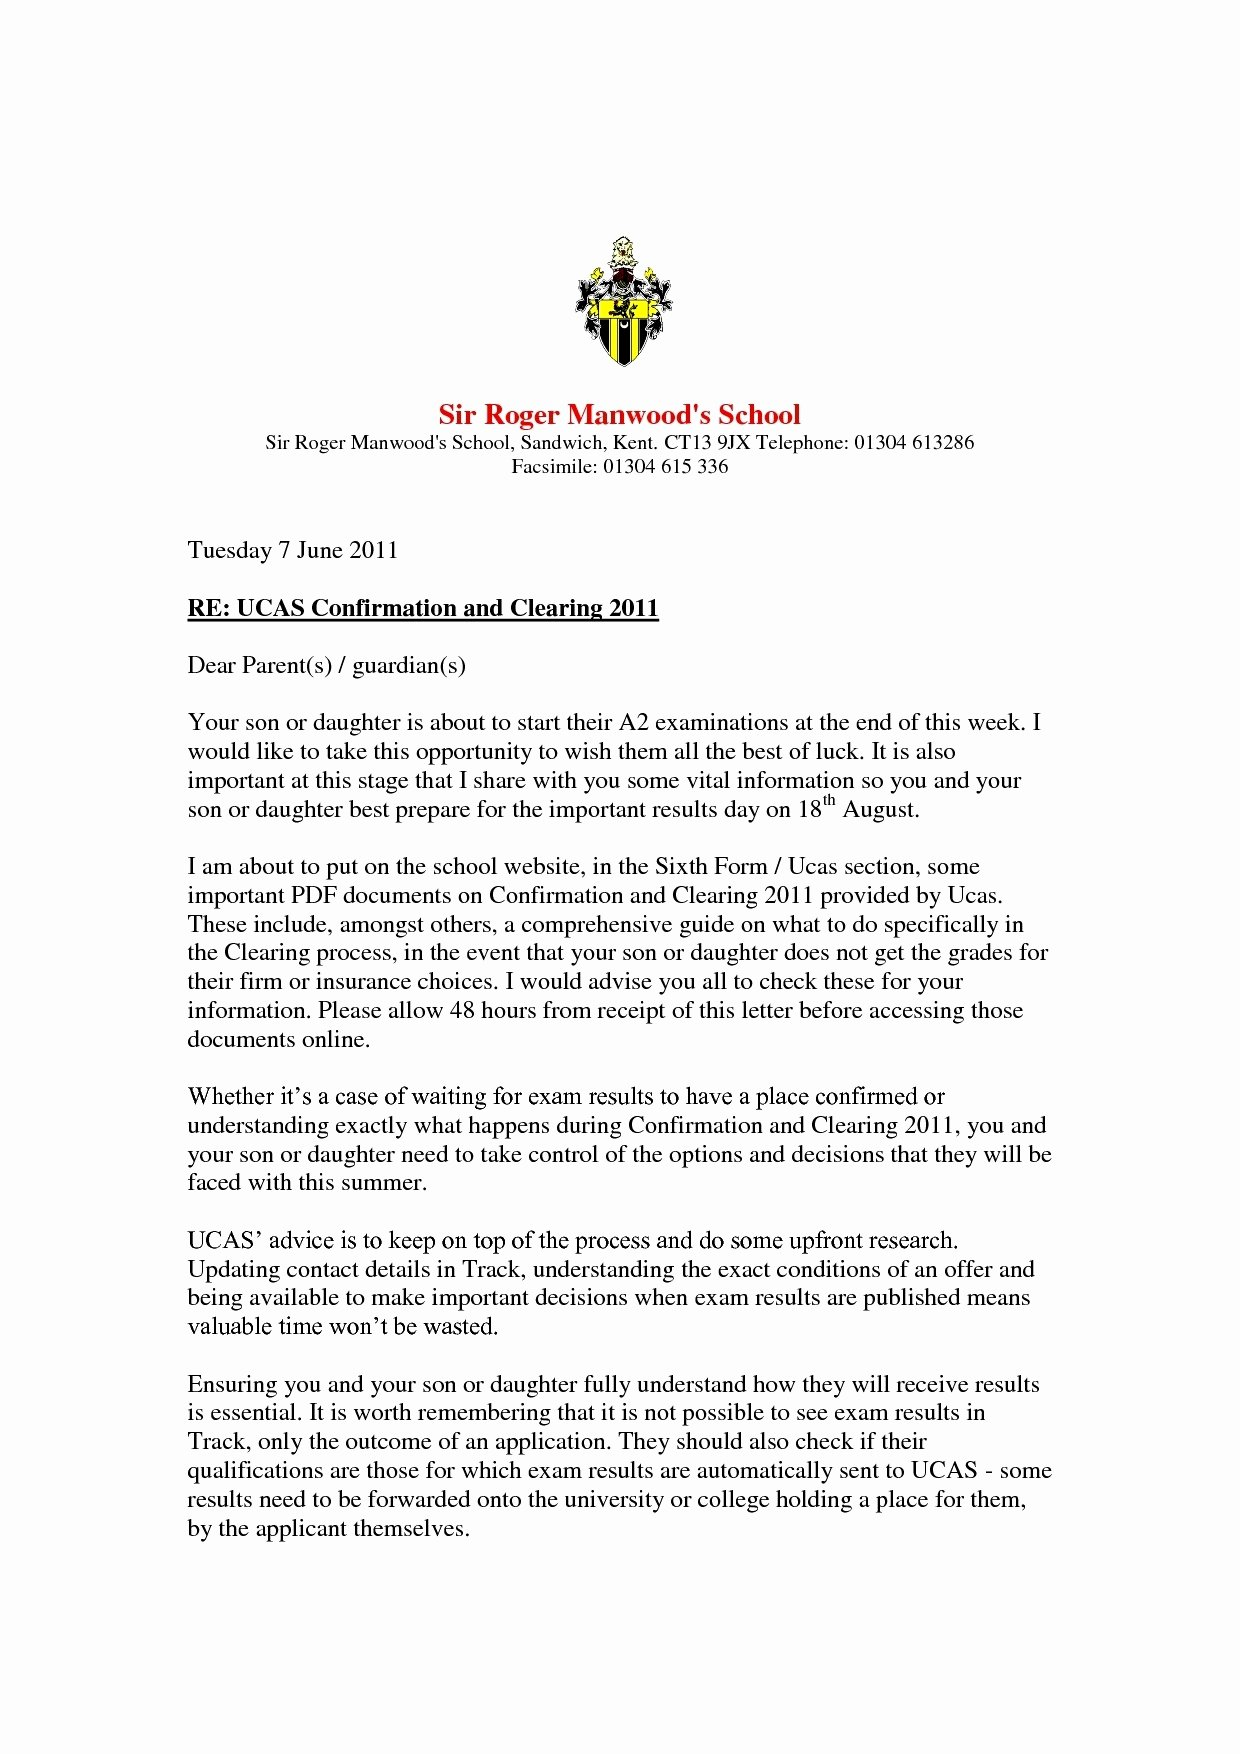 Examples Of Kairos Letters From Parents Lovely 12 13 Confirmation Letters Samples